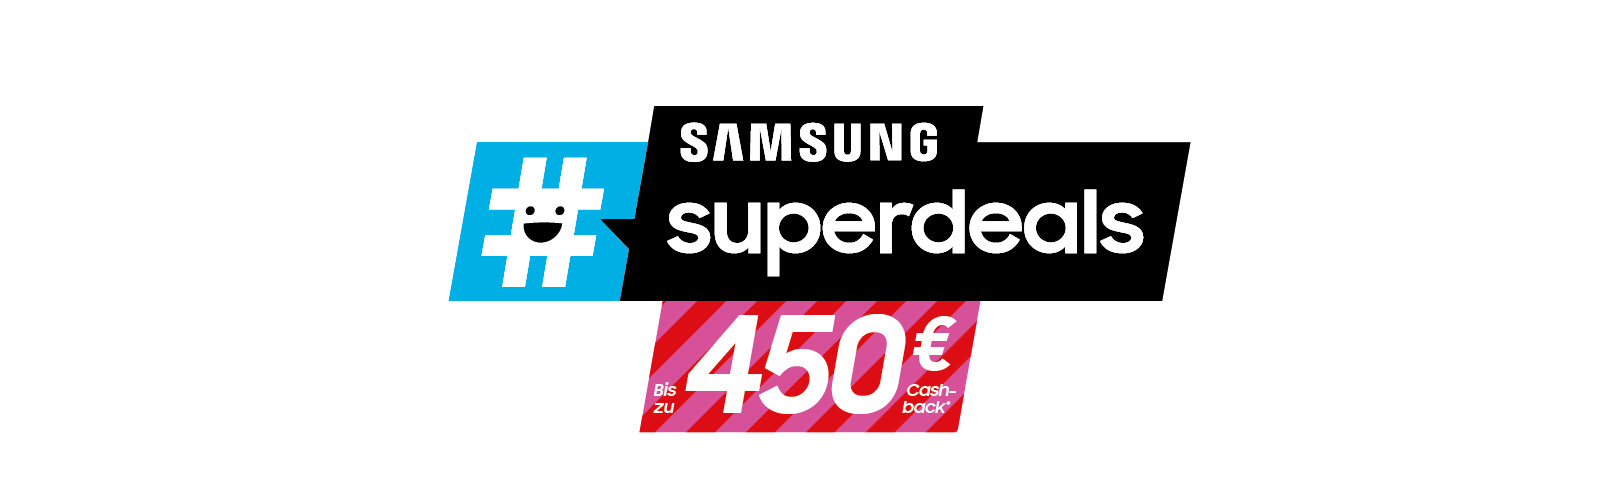 Samsung Superdeals 03-18_3.jpg